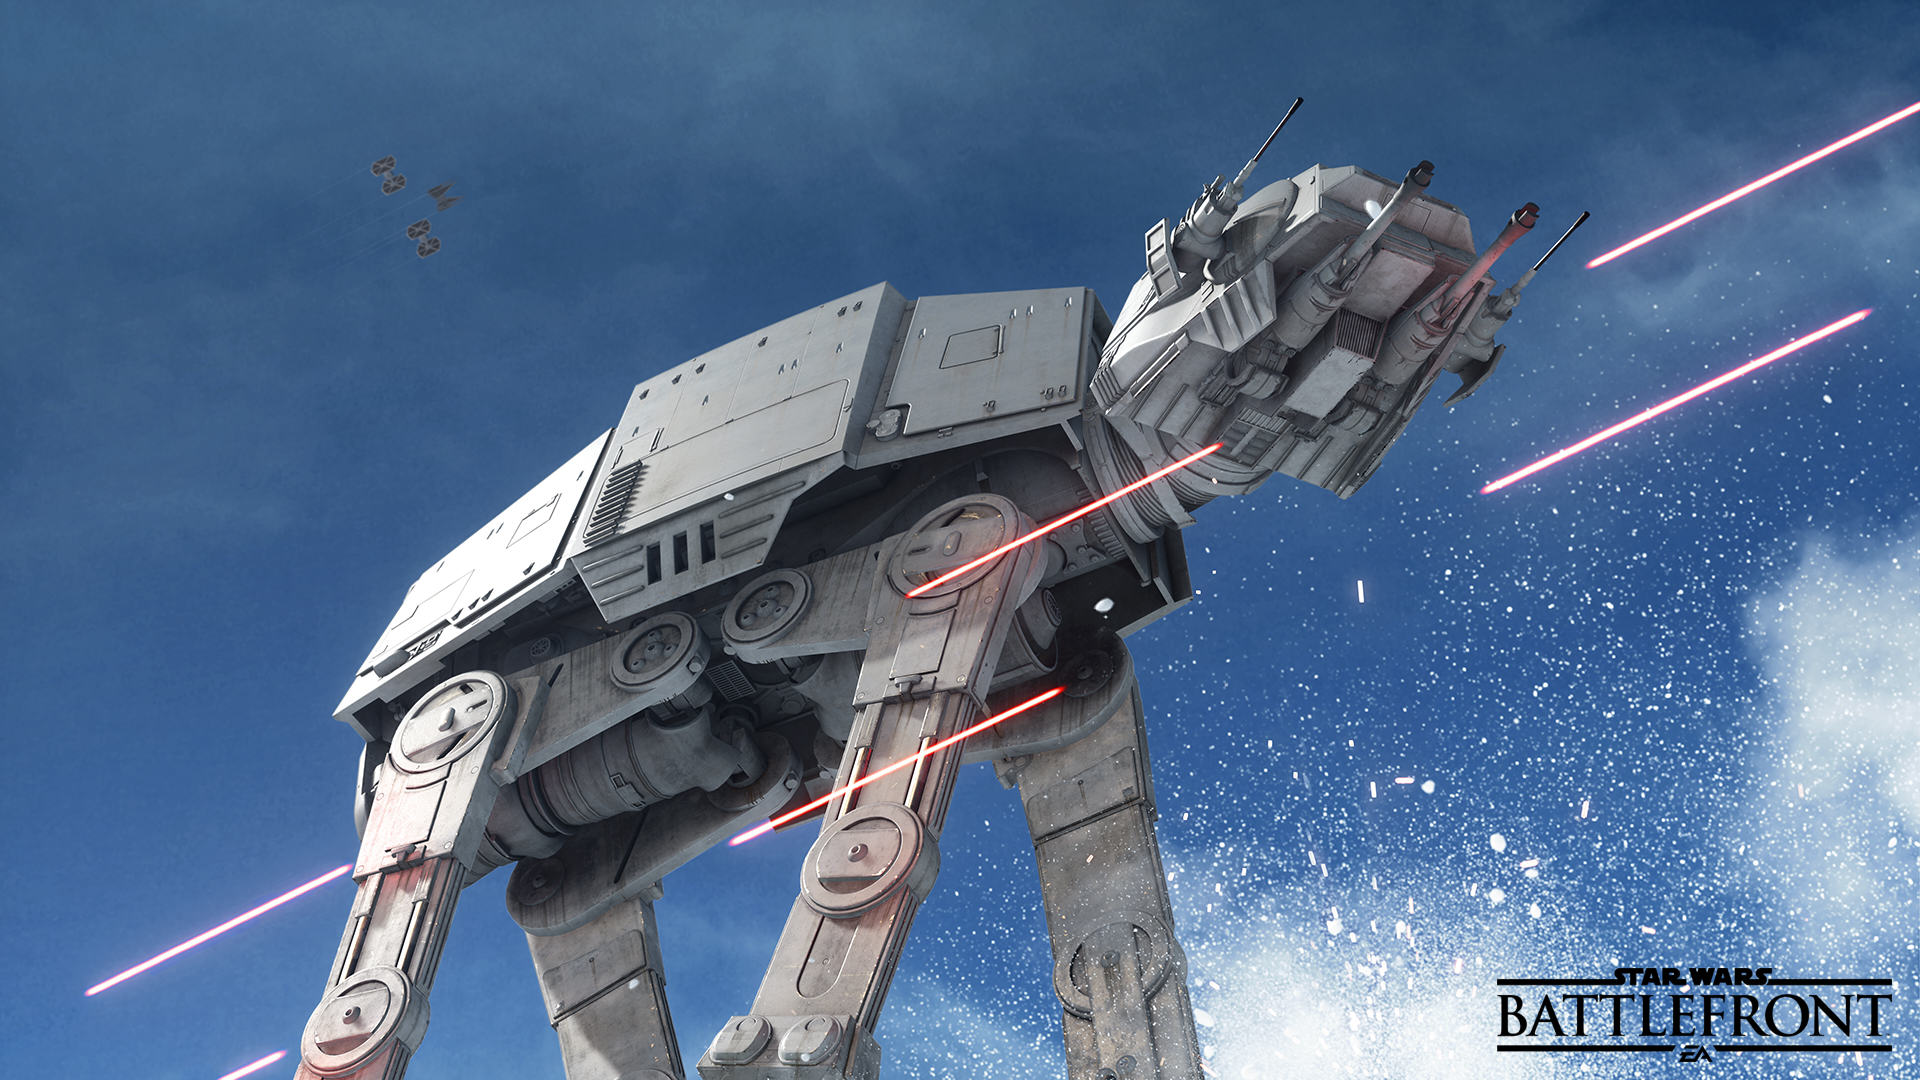 Star Wars: Battlefront Looks Stunning In These Desktop Backgrounds And Images UNILAD 46UJMX0 Imgur2